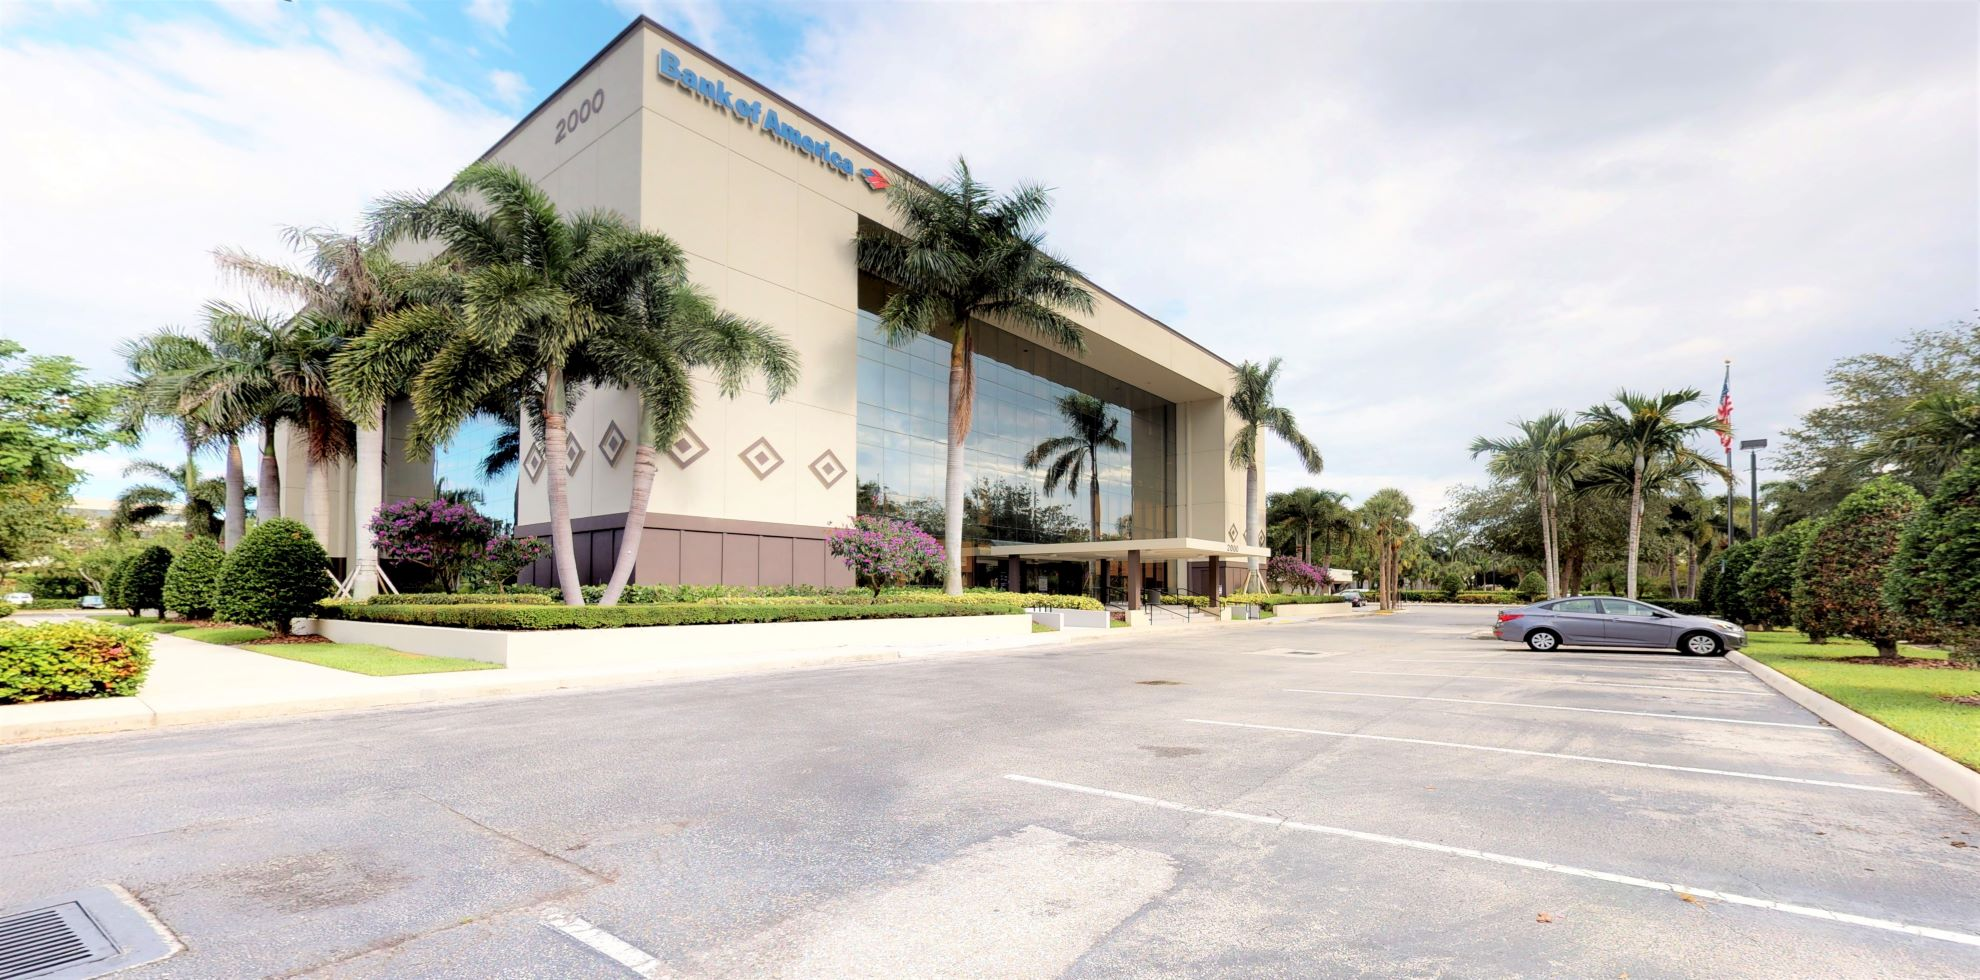 Bank of America financial center with drive-thru ATM   2000 Glades Rd STE 100, Boca Raton, FL 33431